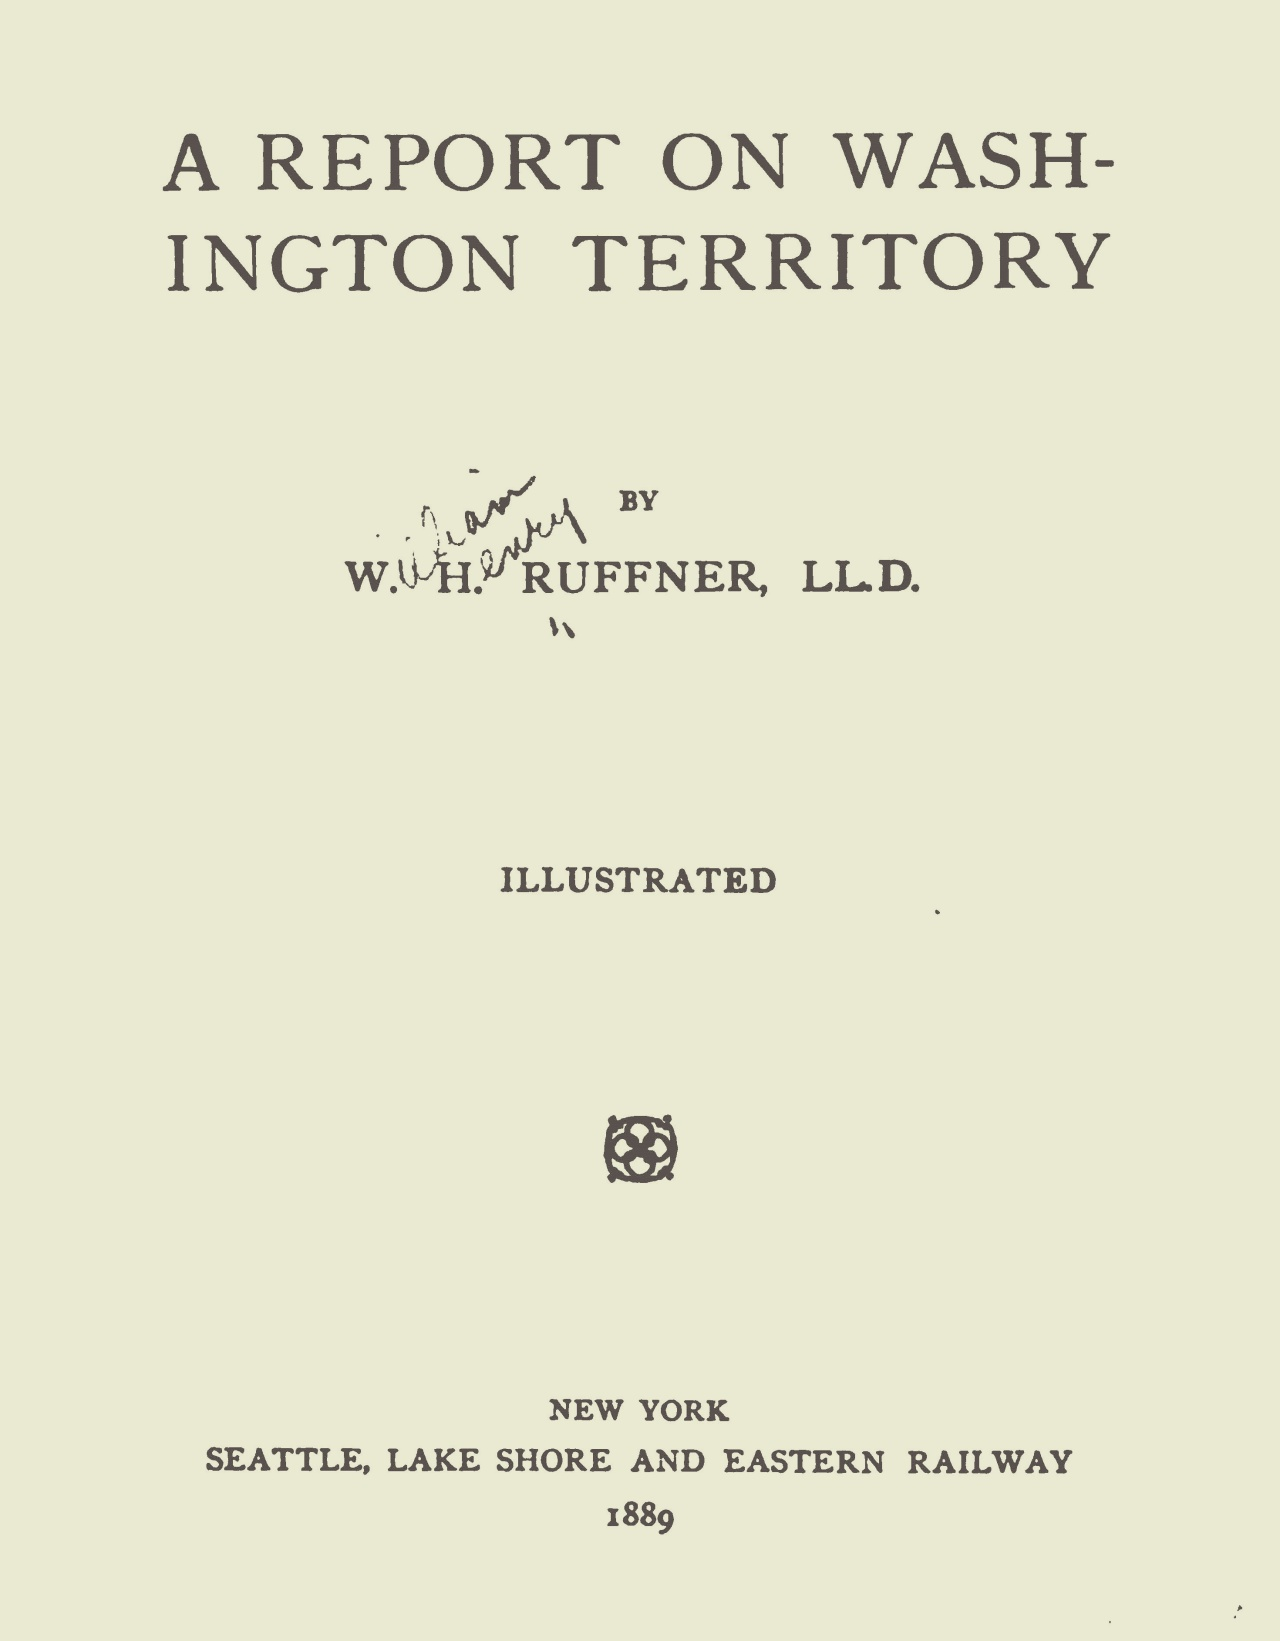 Ruffner, William Henry, A Report on Washington Territory Title Page.jpg